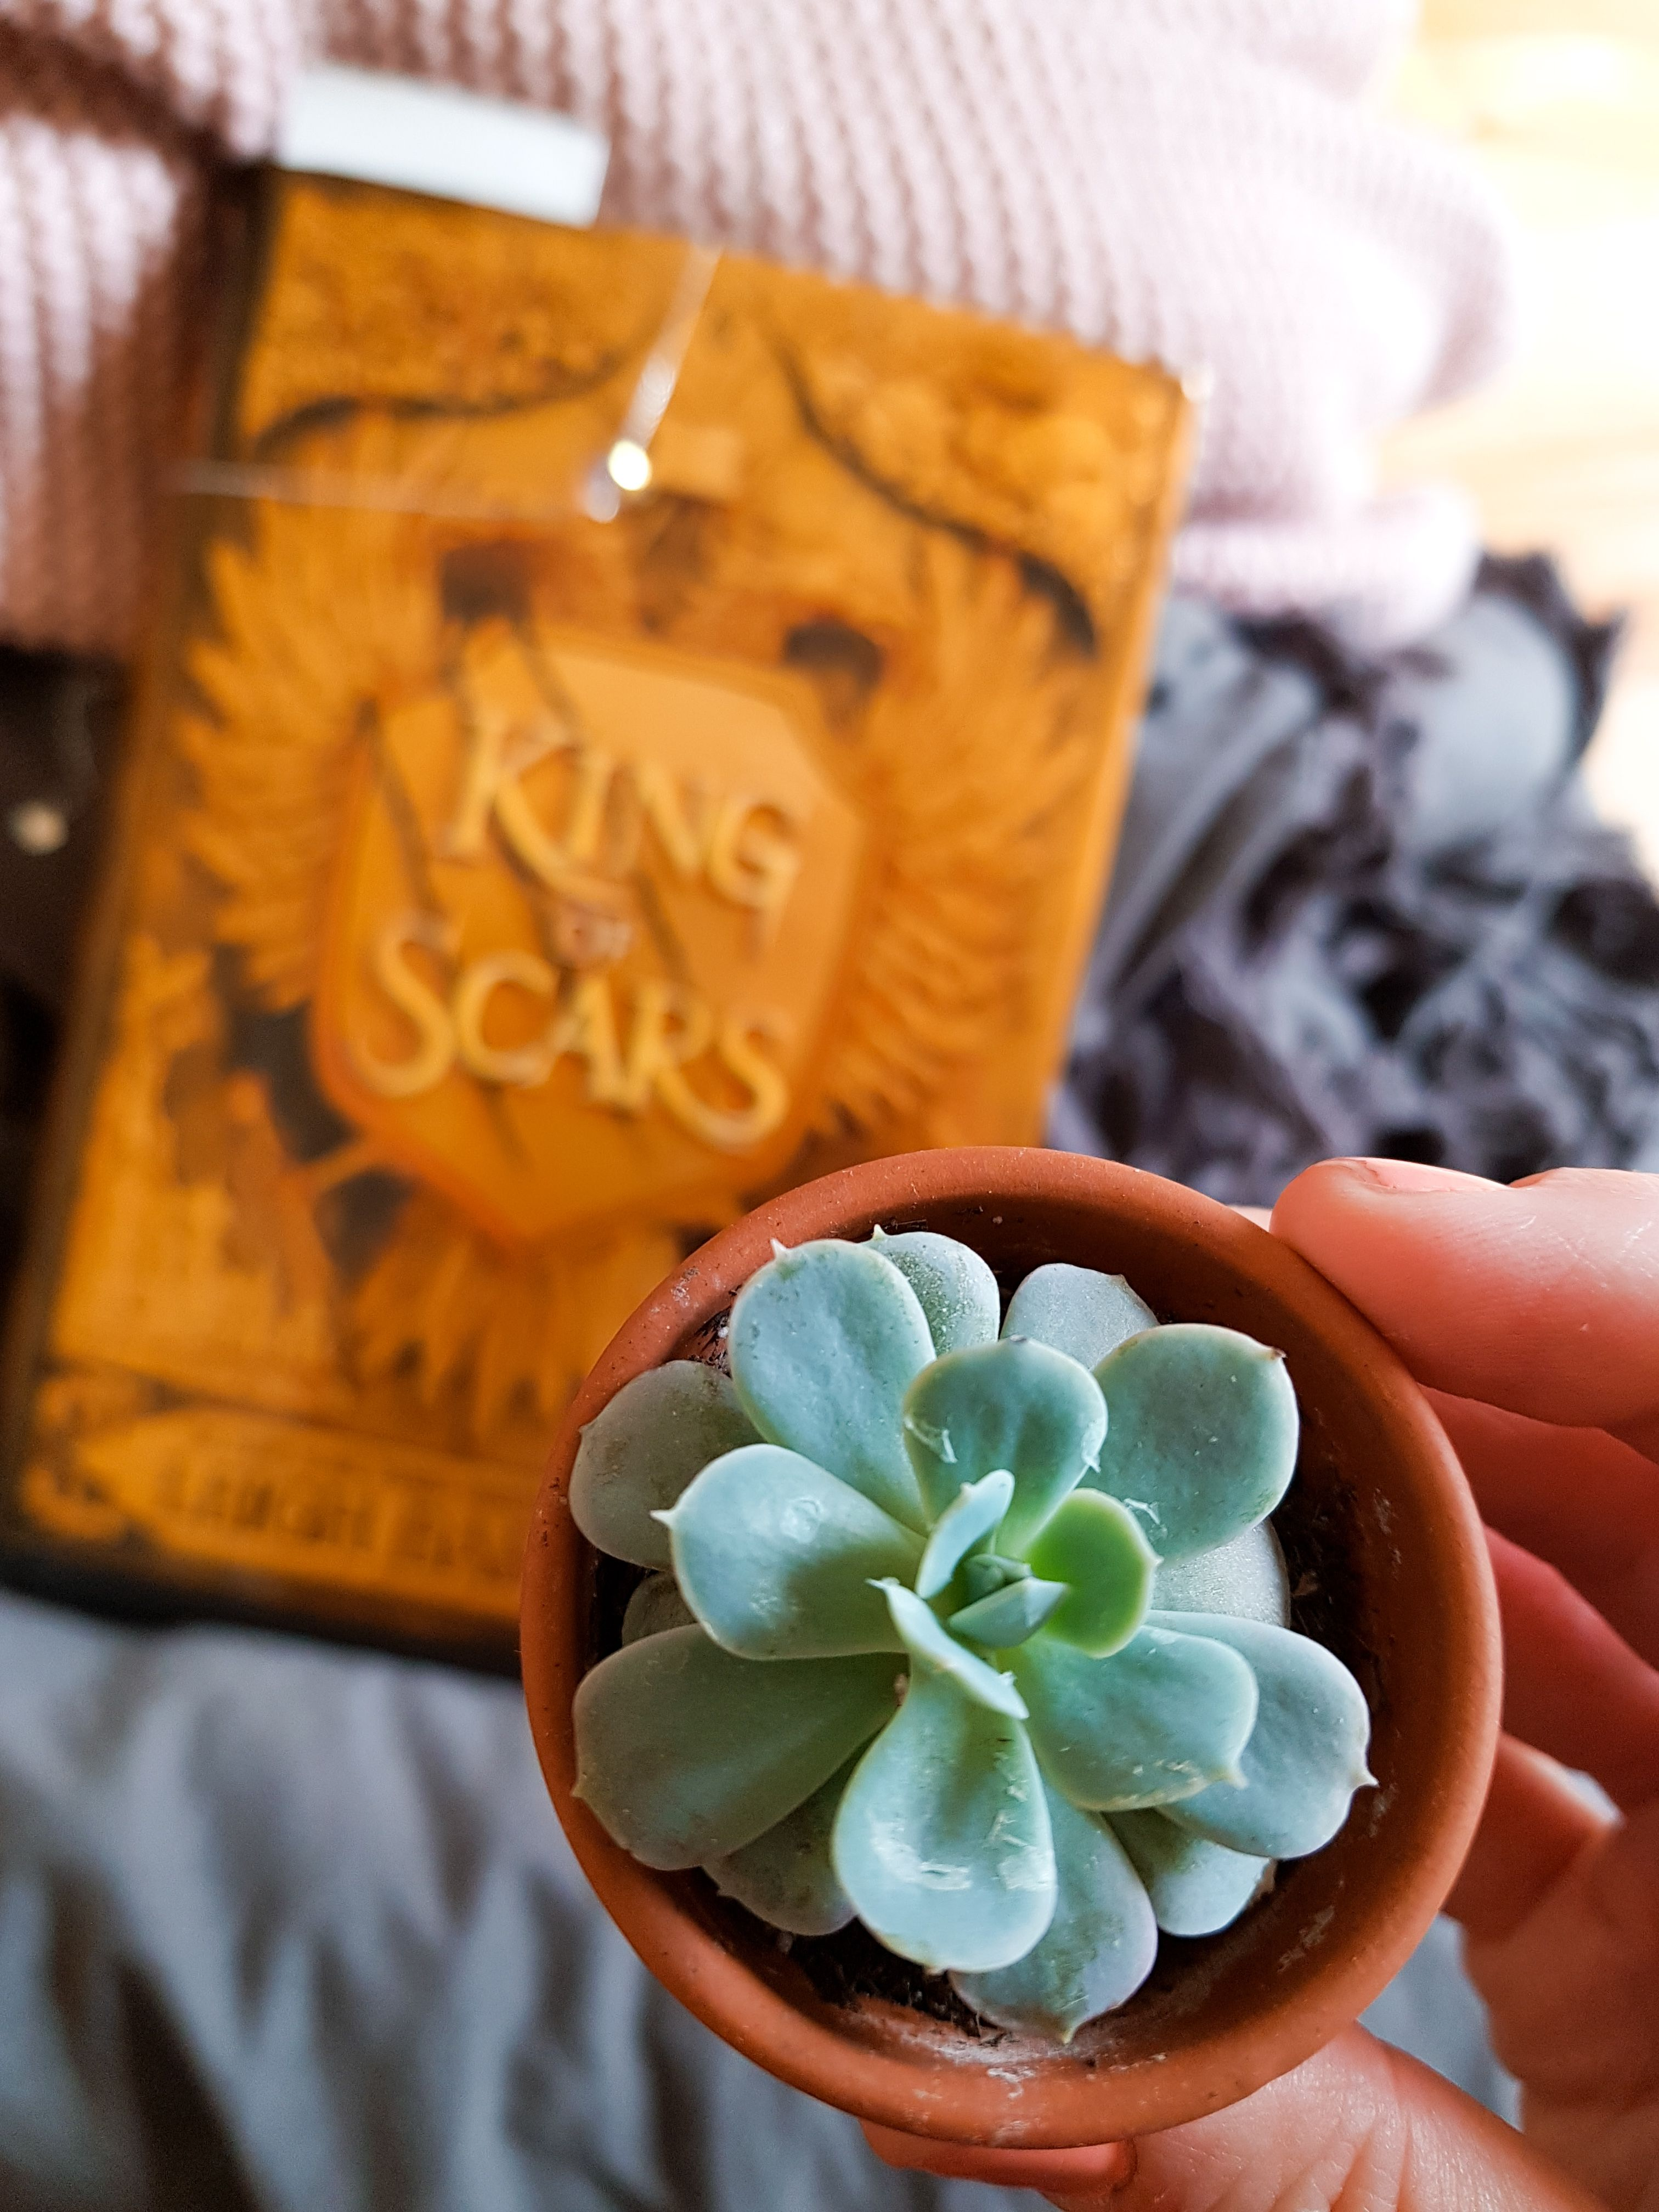 King Of Scars And Succulent On My Bookstagram Coffee And Notebooks